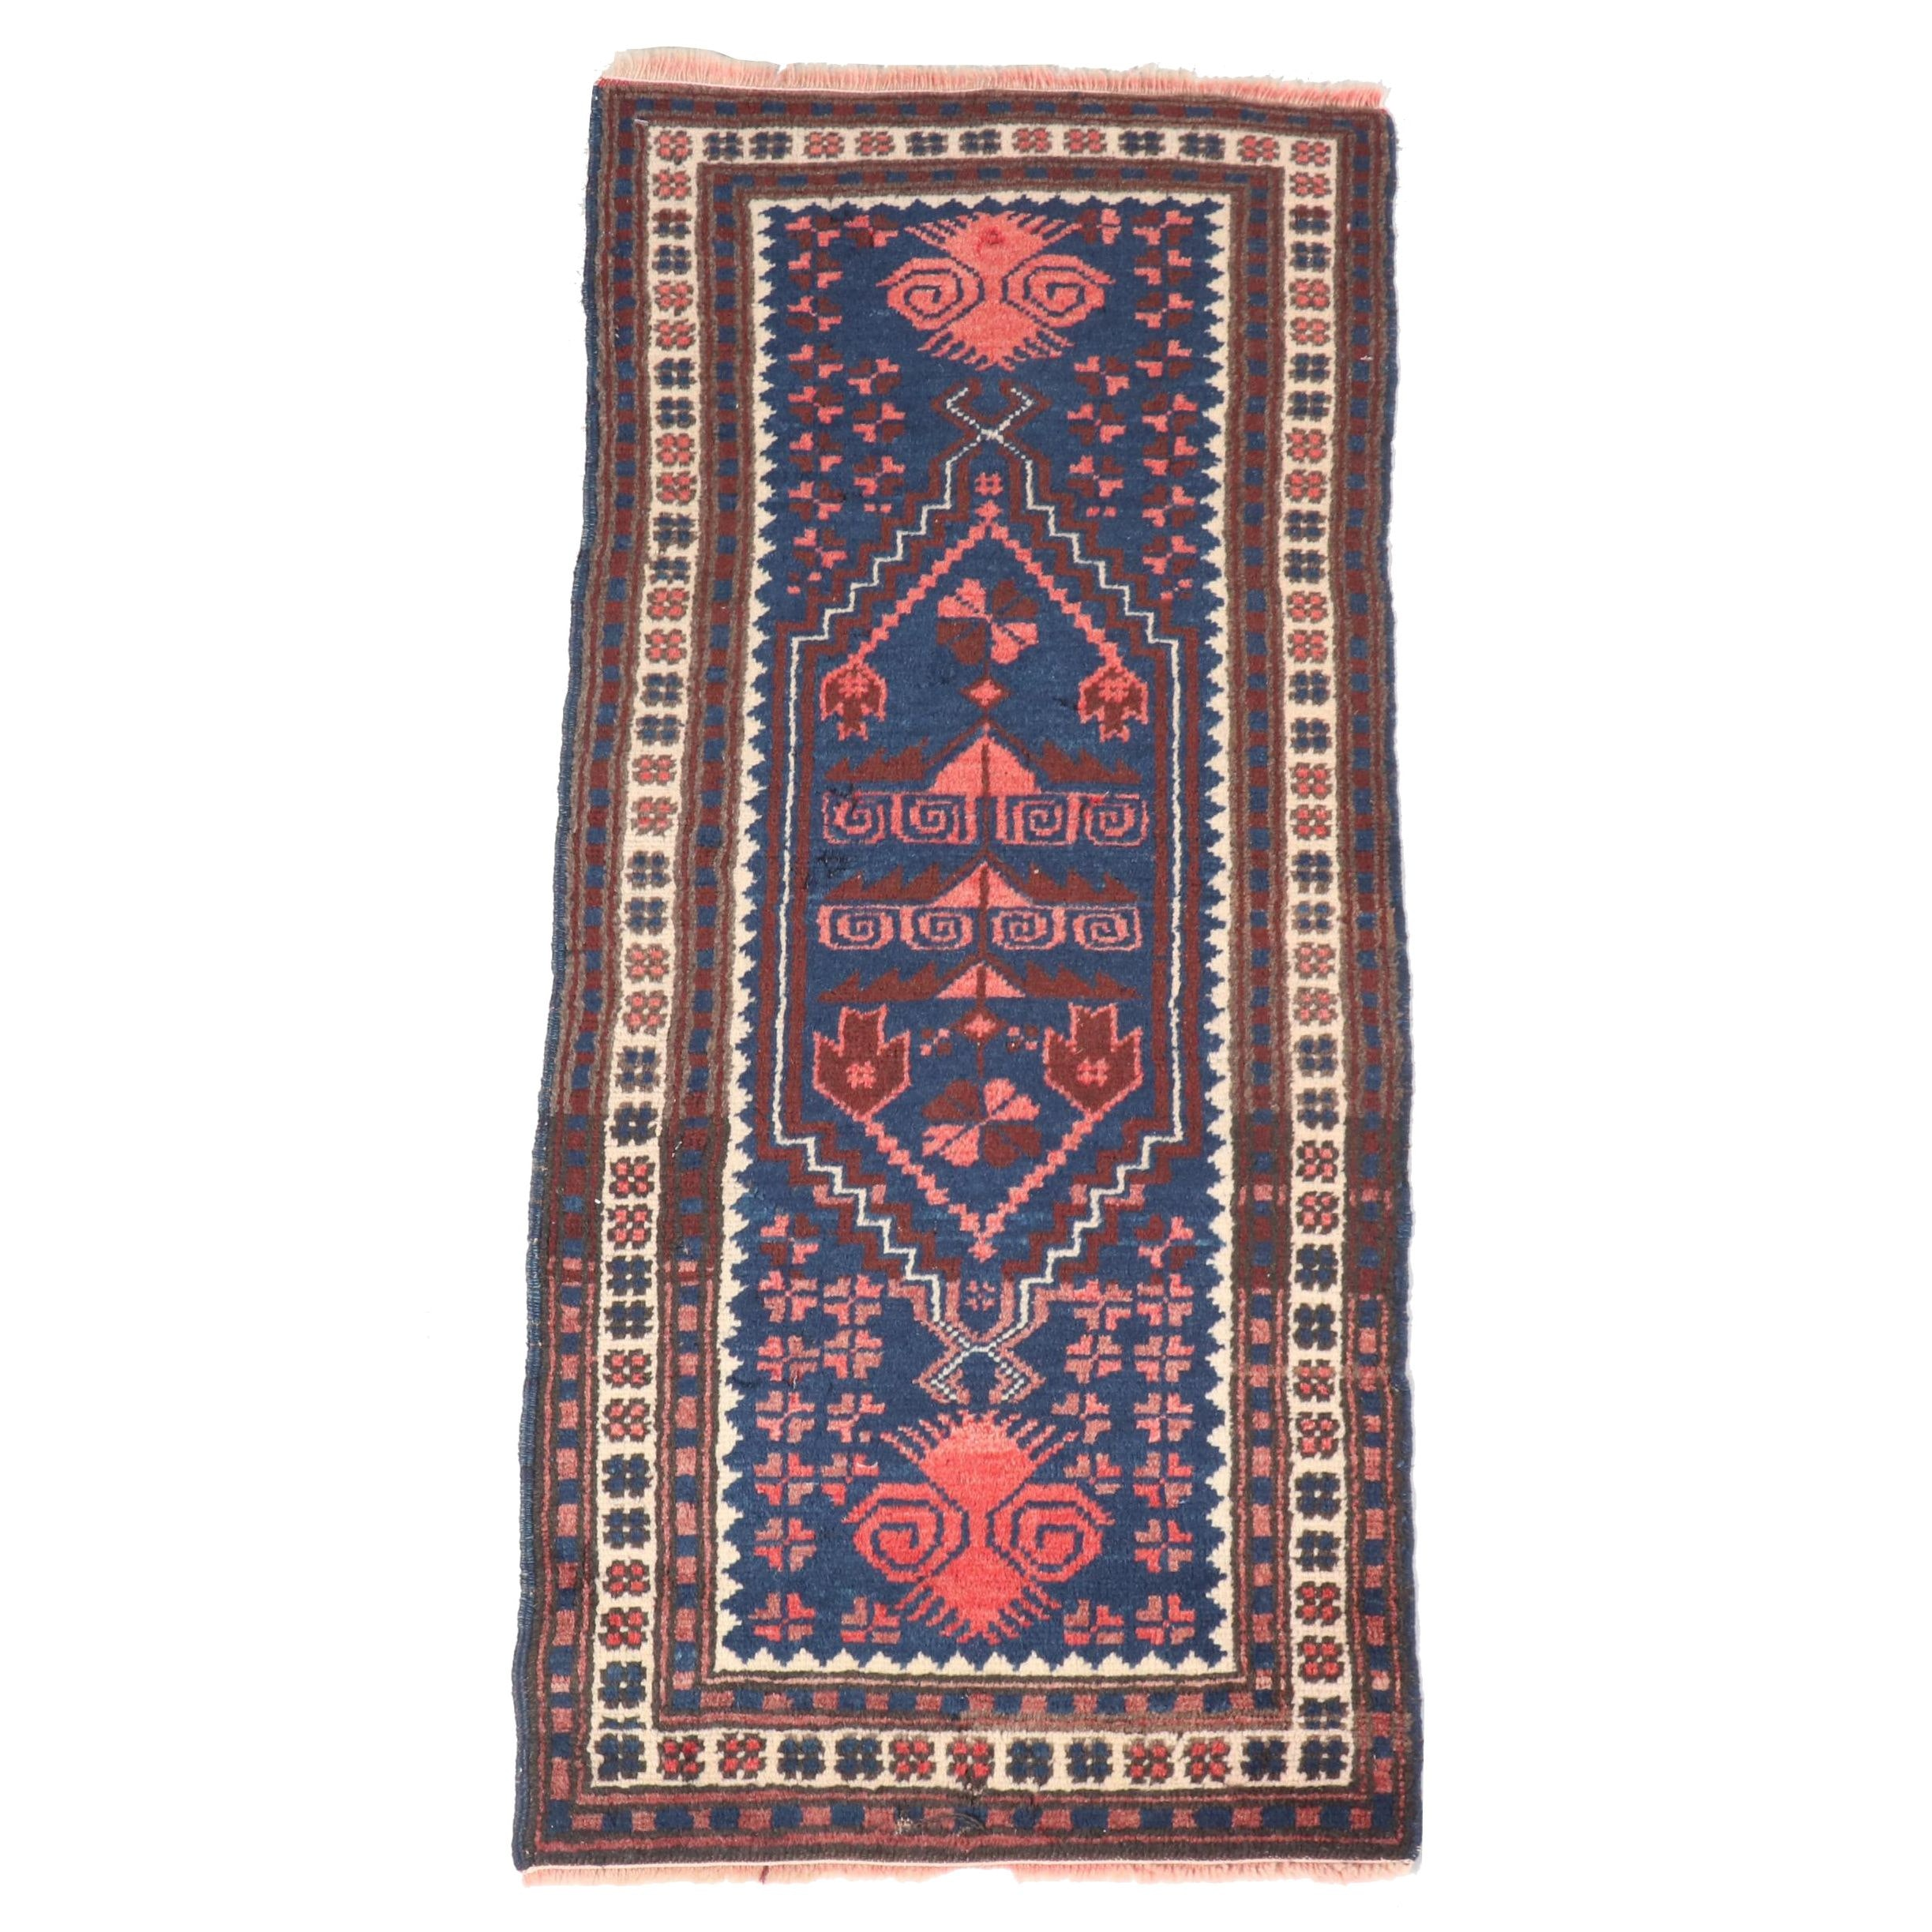 Hand-Knotted Turkish Azari Wool Carpet Runner